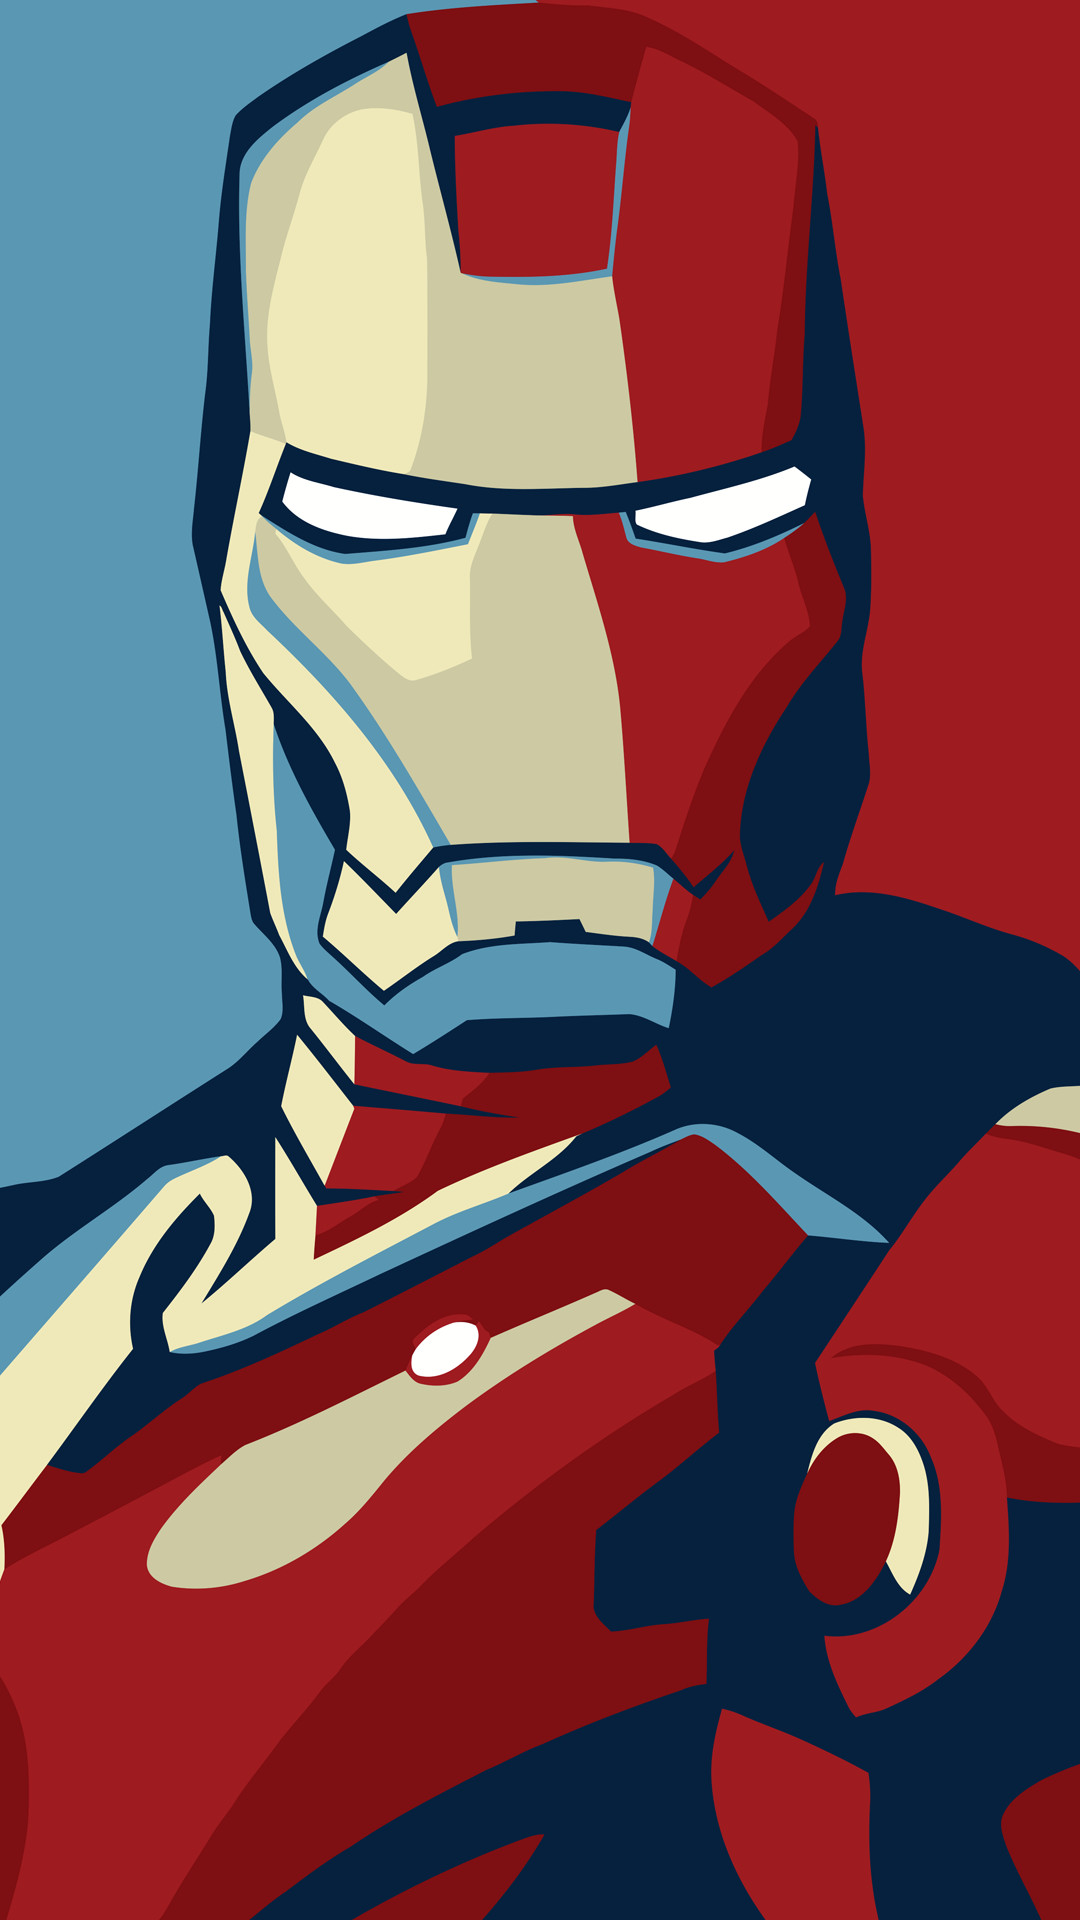 Wallpaper Iron Man Collection For Free Download